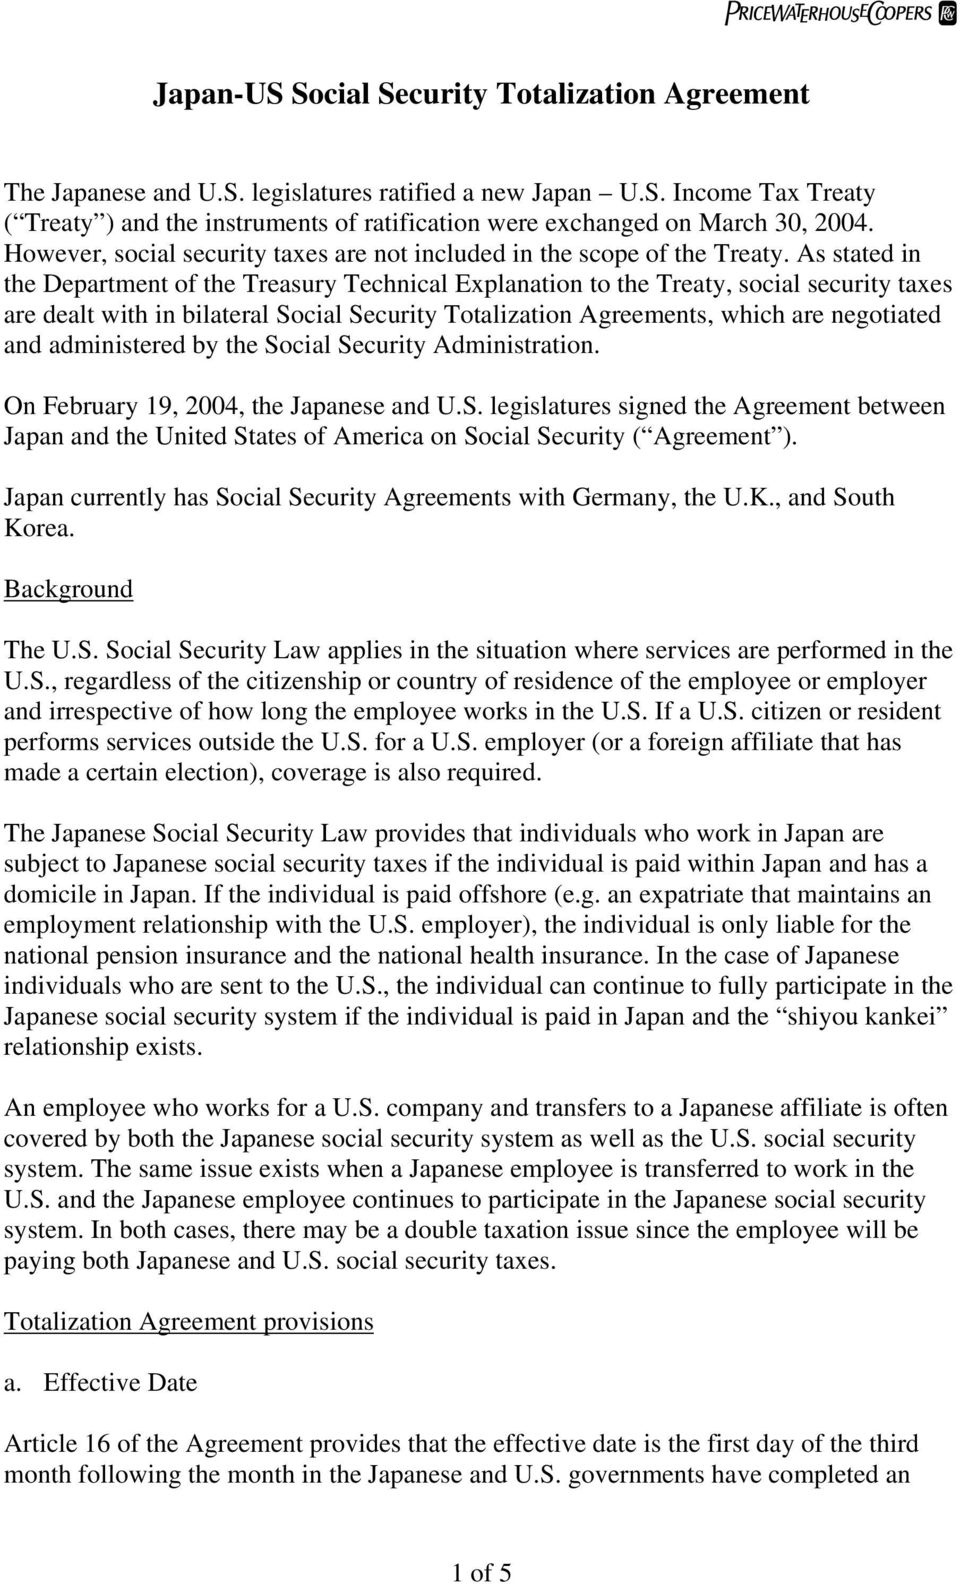 Japan Us Social Security Totalization Agreement Pdf